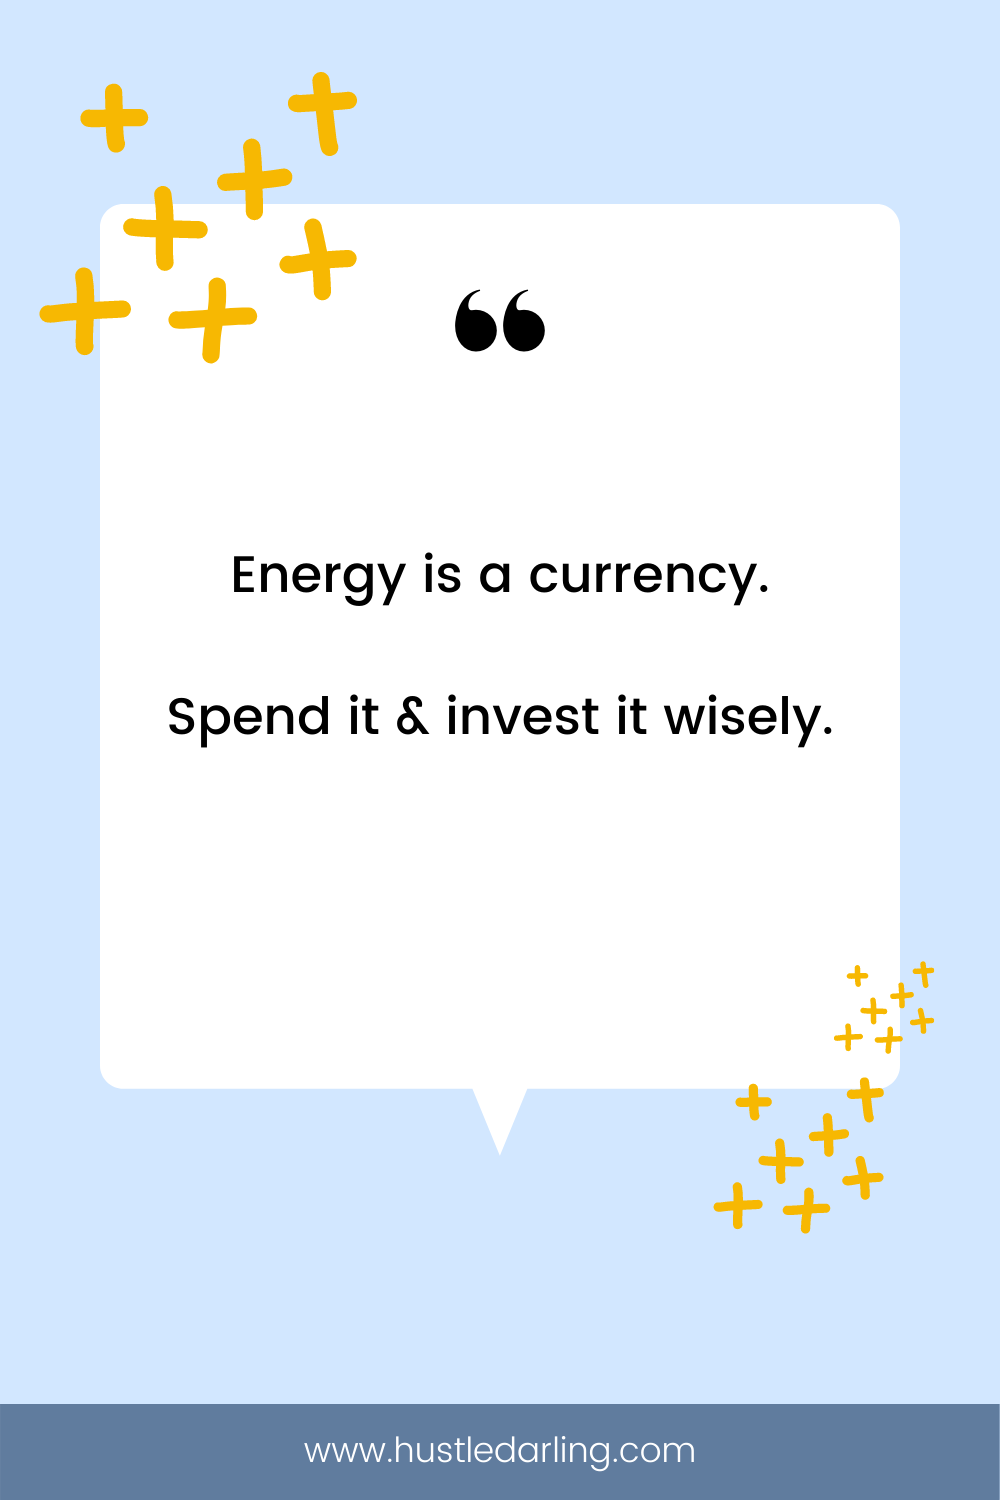 """Bright yellow plus signs are in the top and bottom corners of the image. On a light blue background is a white speech bubble with a large quotation mark at the top. Text underneath reads """"Energy is a currency. Spend it and invest it wisely."""""""